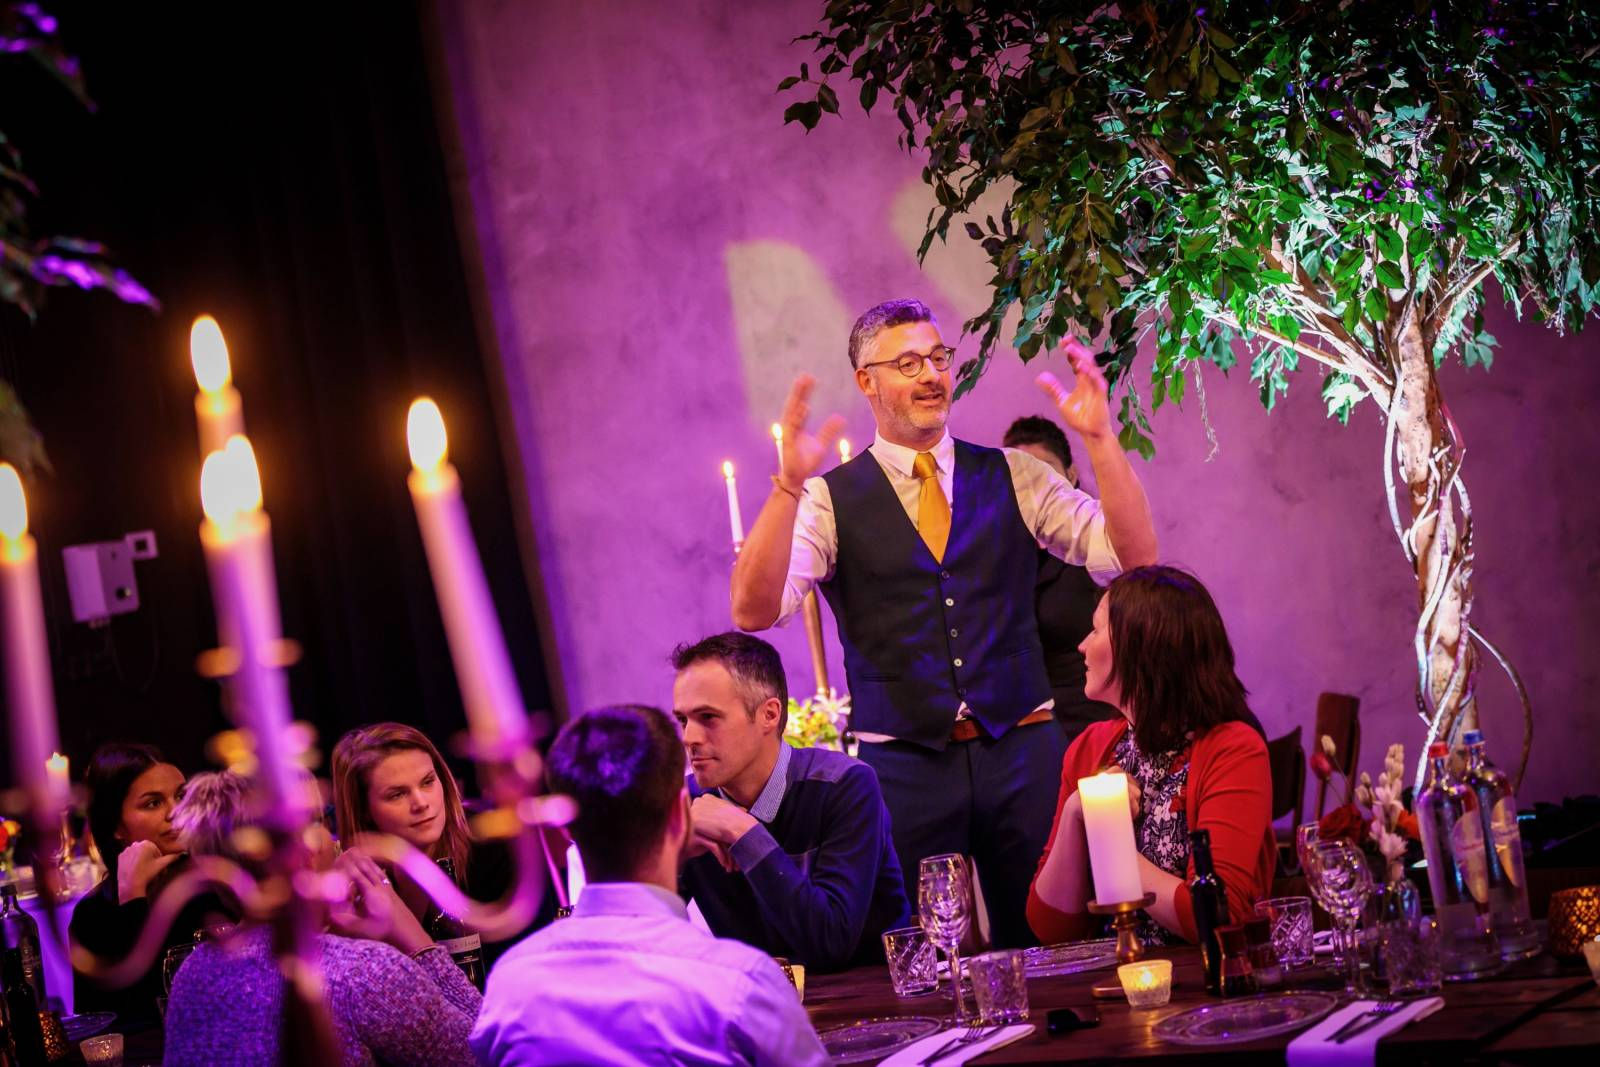 Watt17 - Feestzaal huwelijk - Taste Catering - Nicolas Herbots Photography - House of Weddings - 15